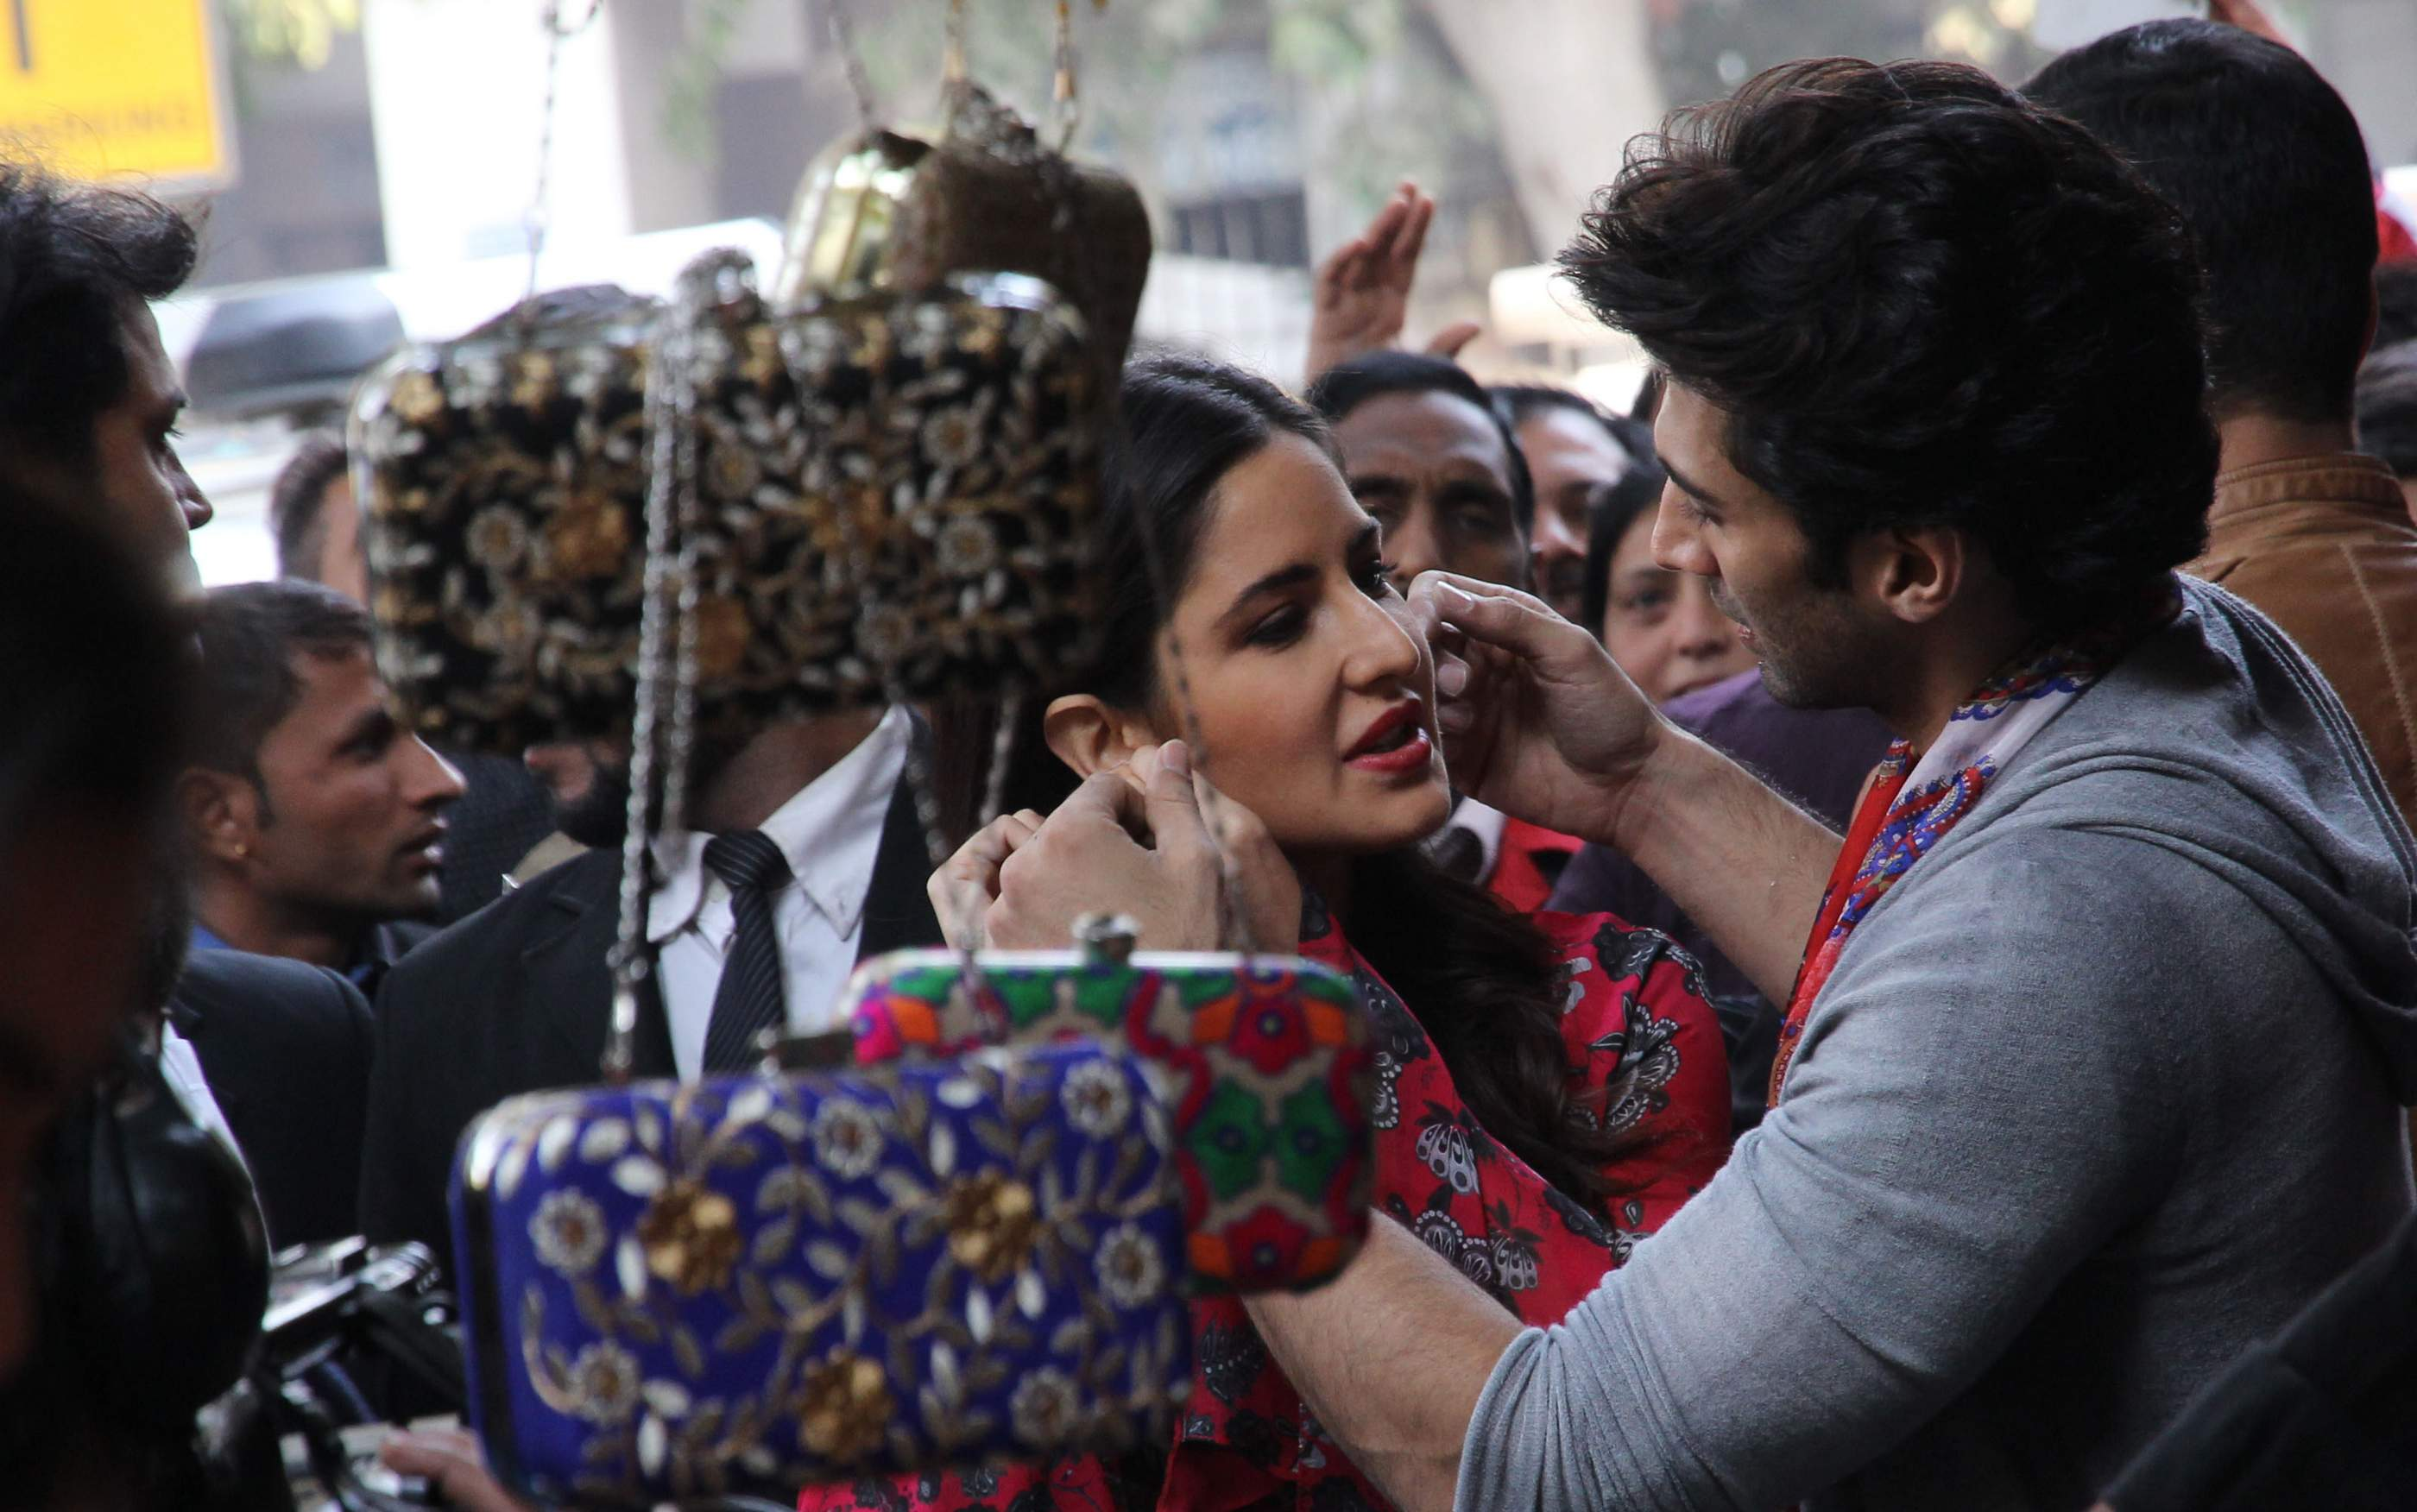 Bollywood: Katrina Kaif and Aditya Roy Kapoor shop together at Delhi's Janpath